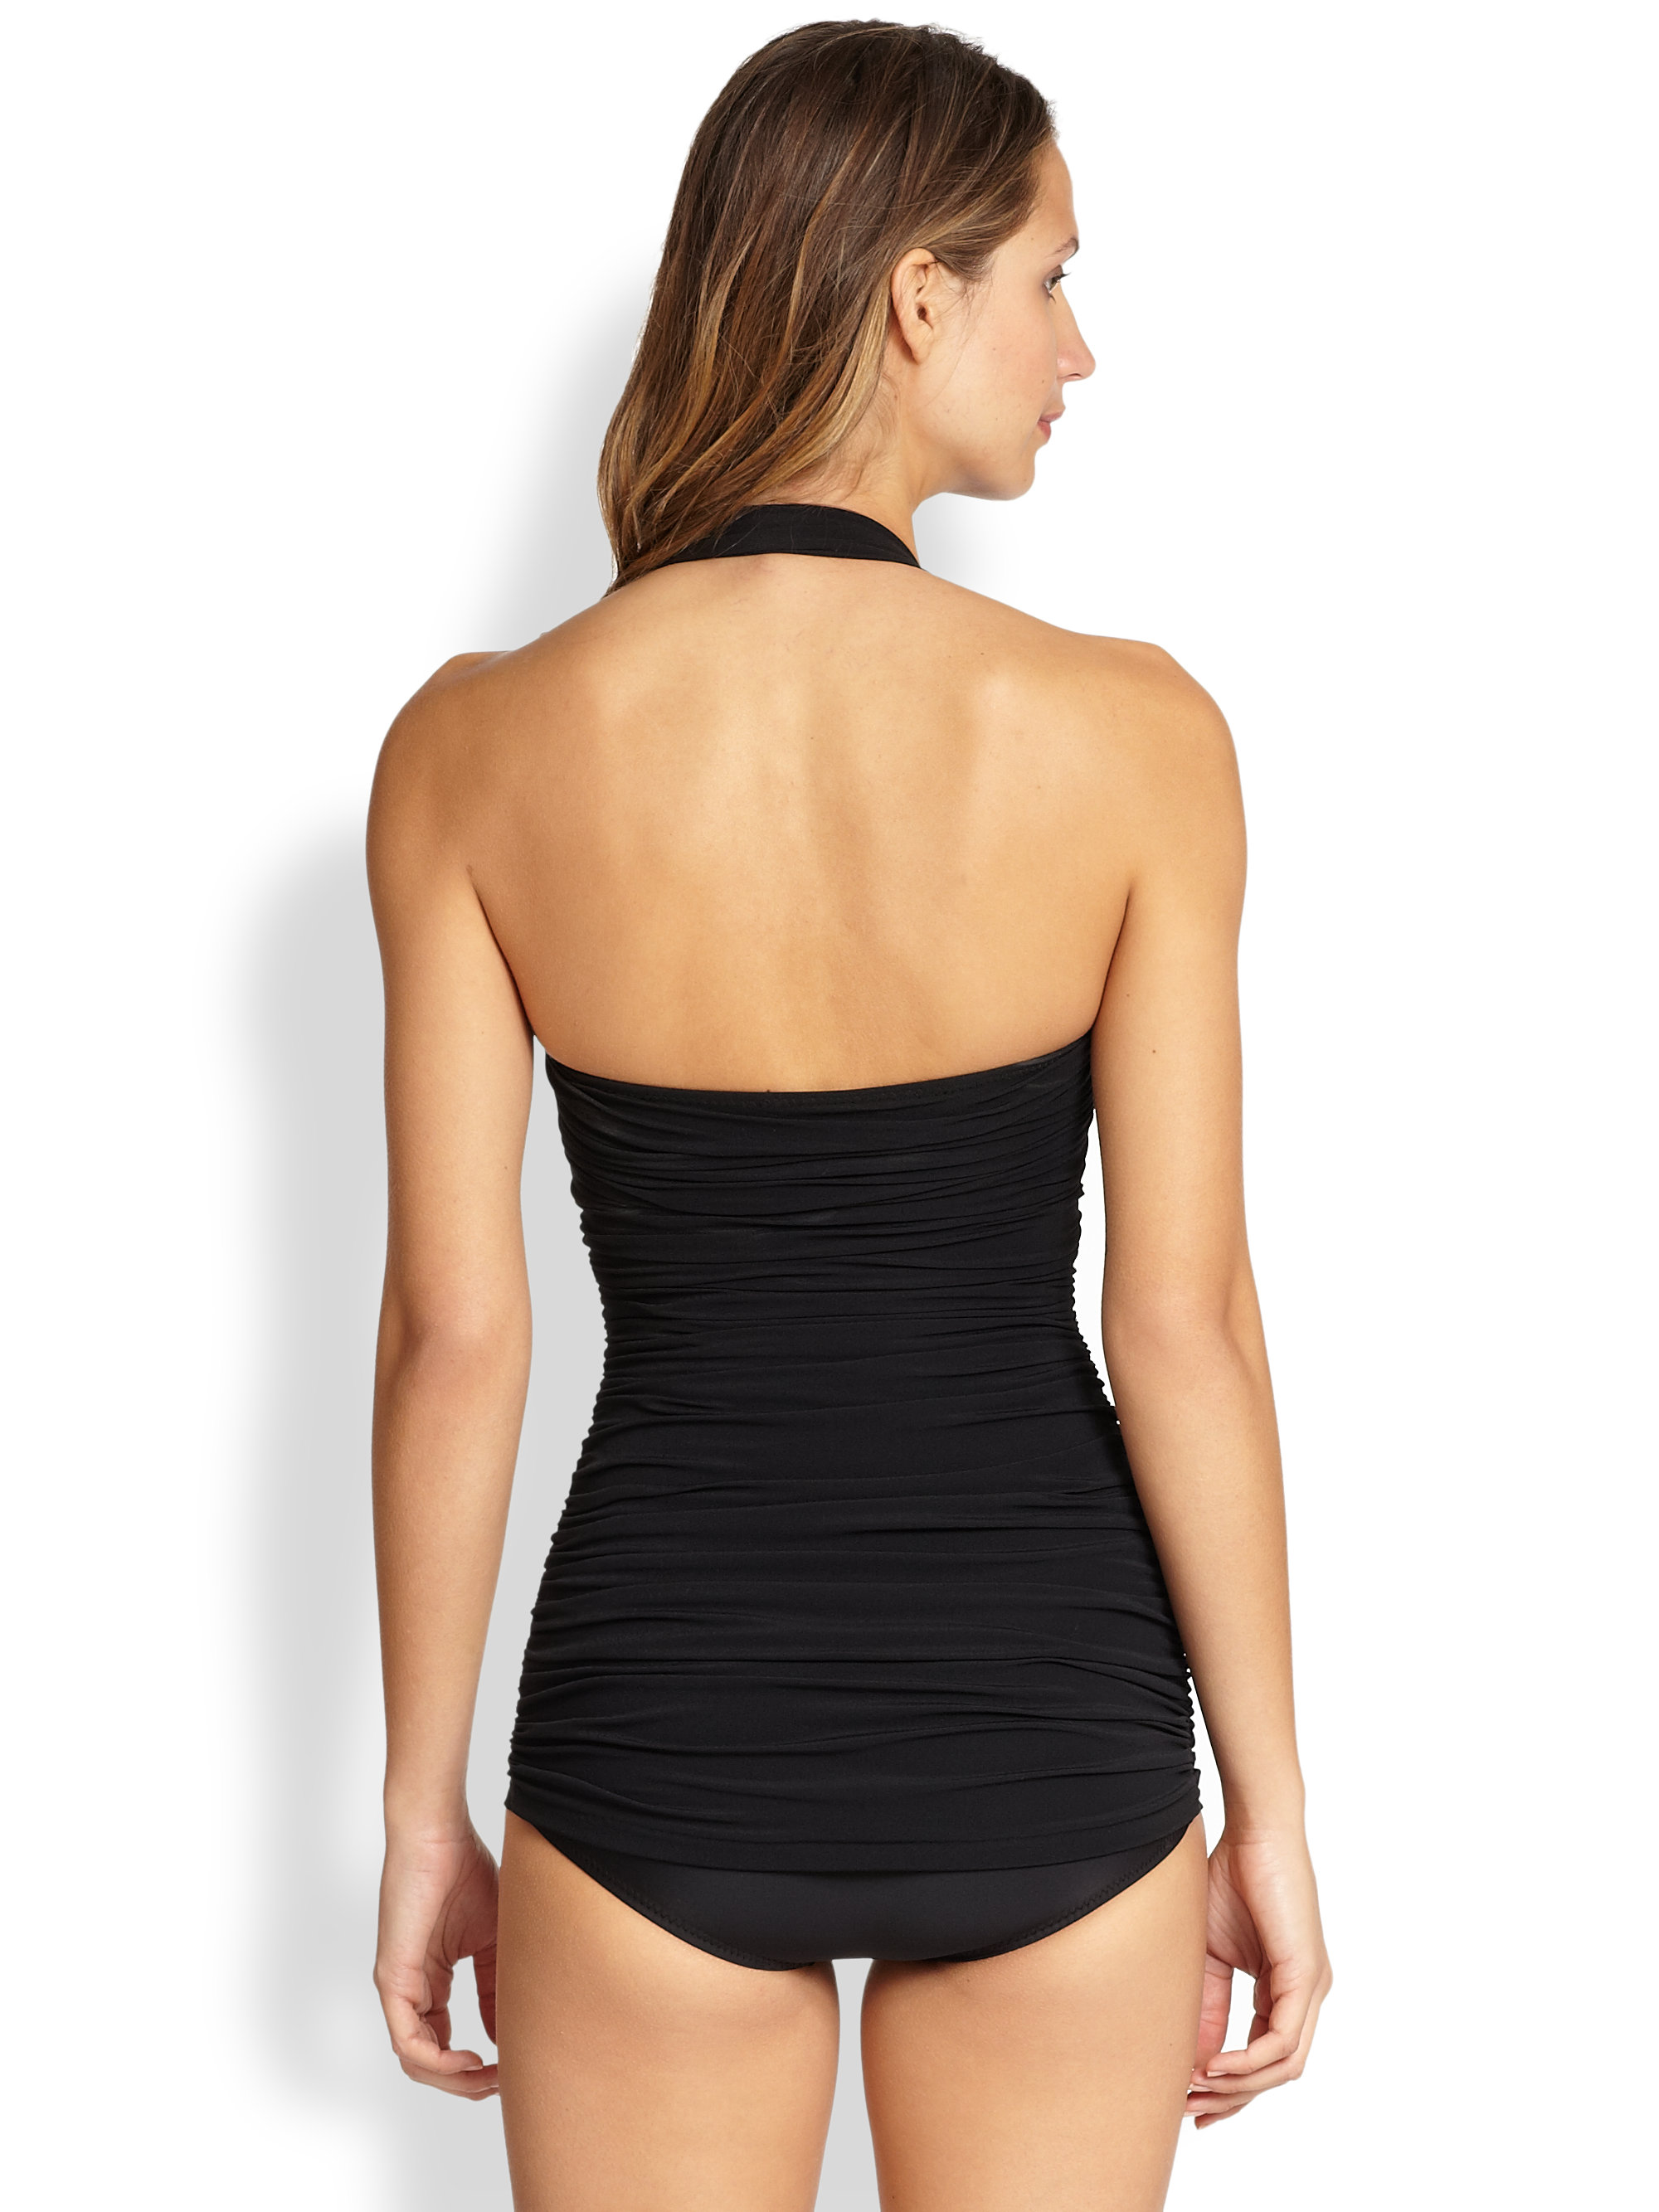 norma kamali one piece ruched maillot swimsuit in black lyst. Black Bedroom Furniture Sets. Home Design Ideas